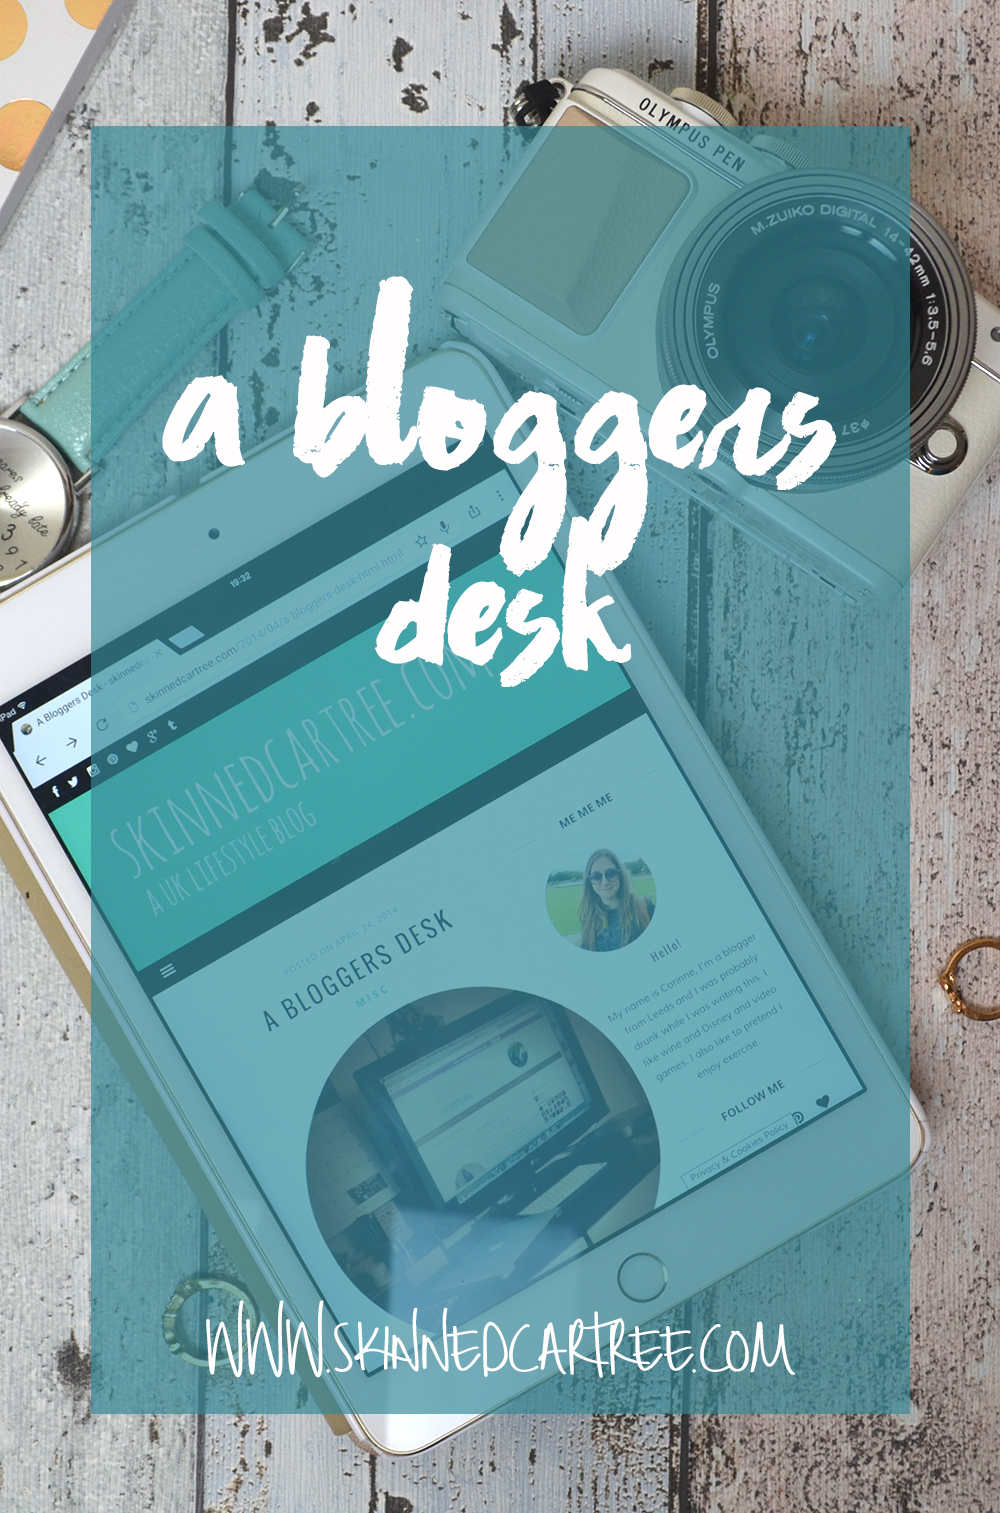 A new blog post about my blogging desk and space where create my blog posts!